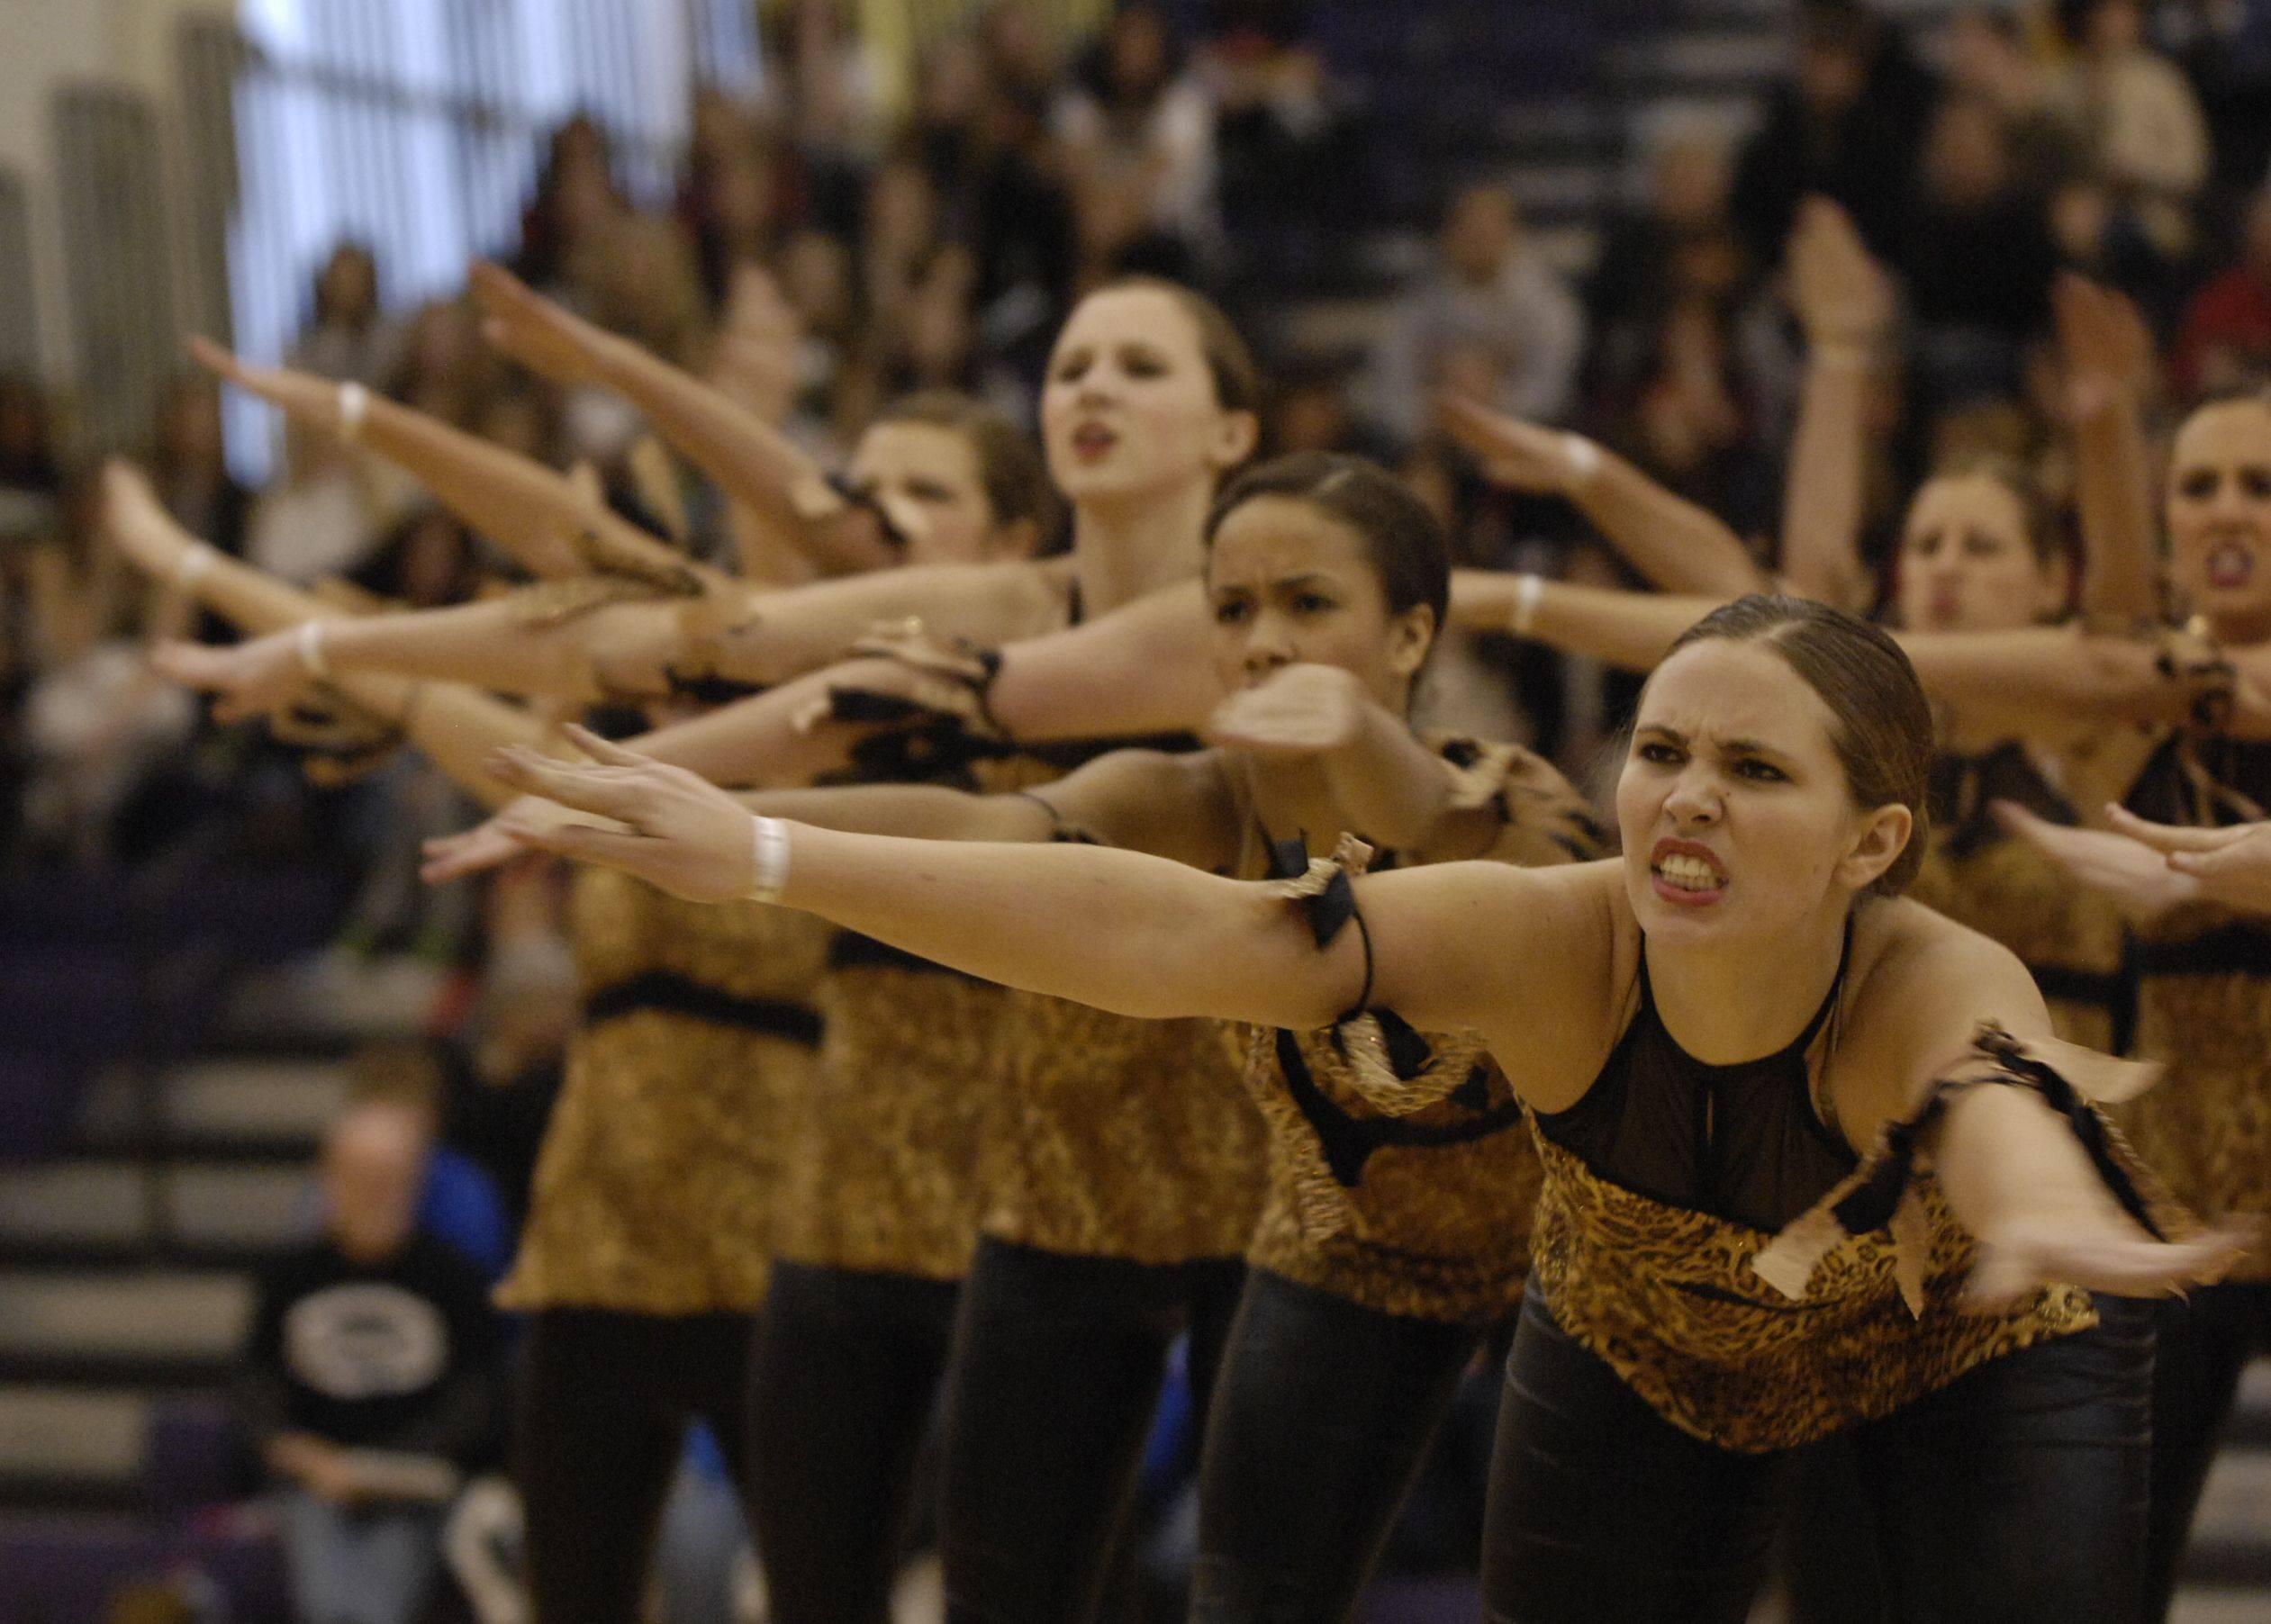 Stevenson High School AAA Kick, performs at the Team Dance Illinois Wauconda Invitational competition at Wauconda High School.